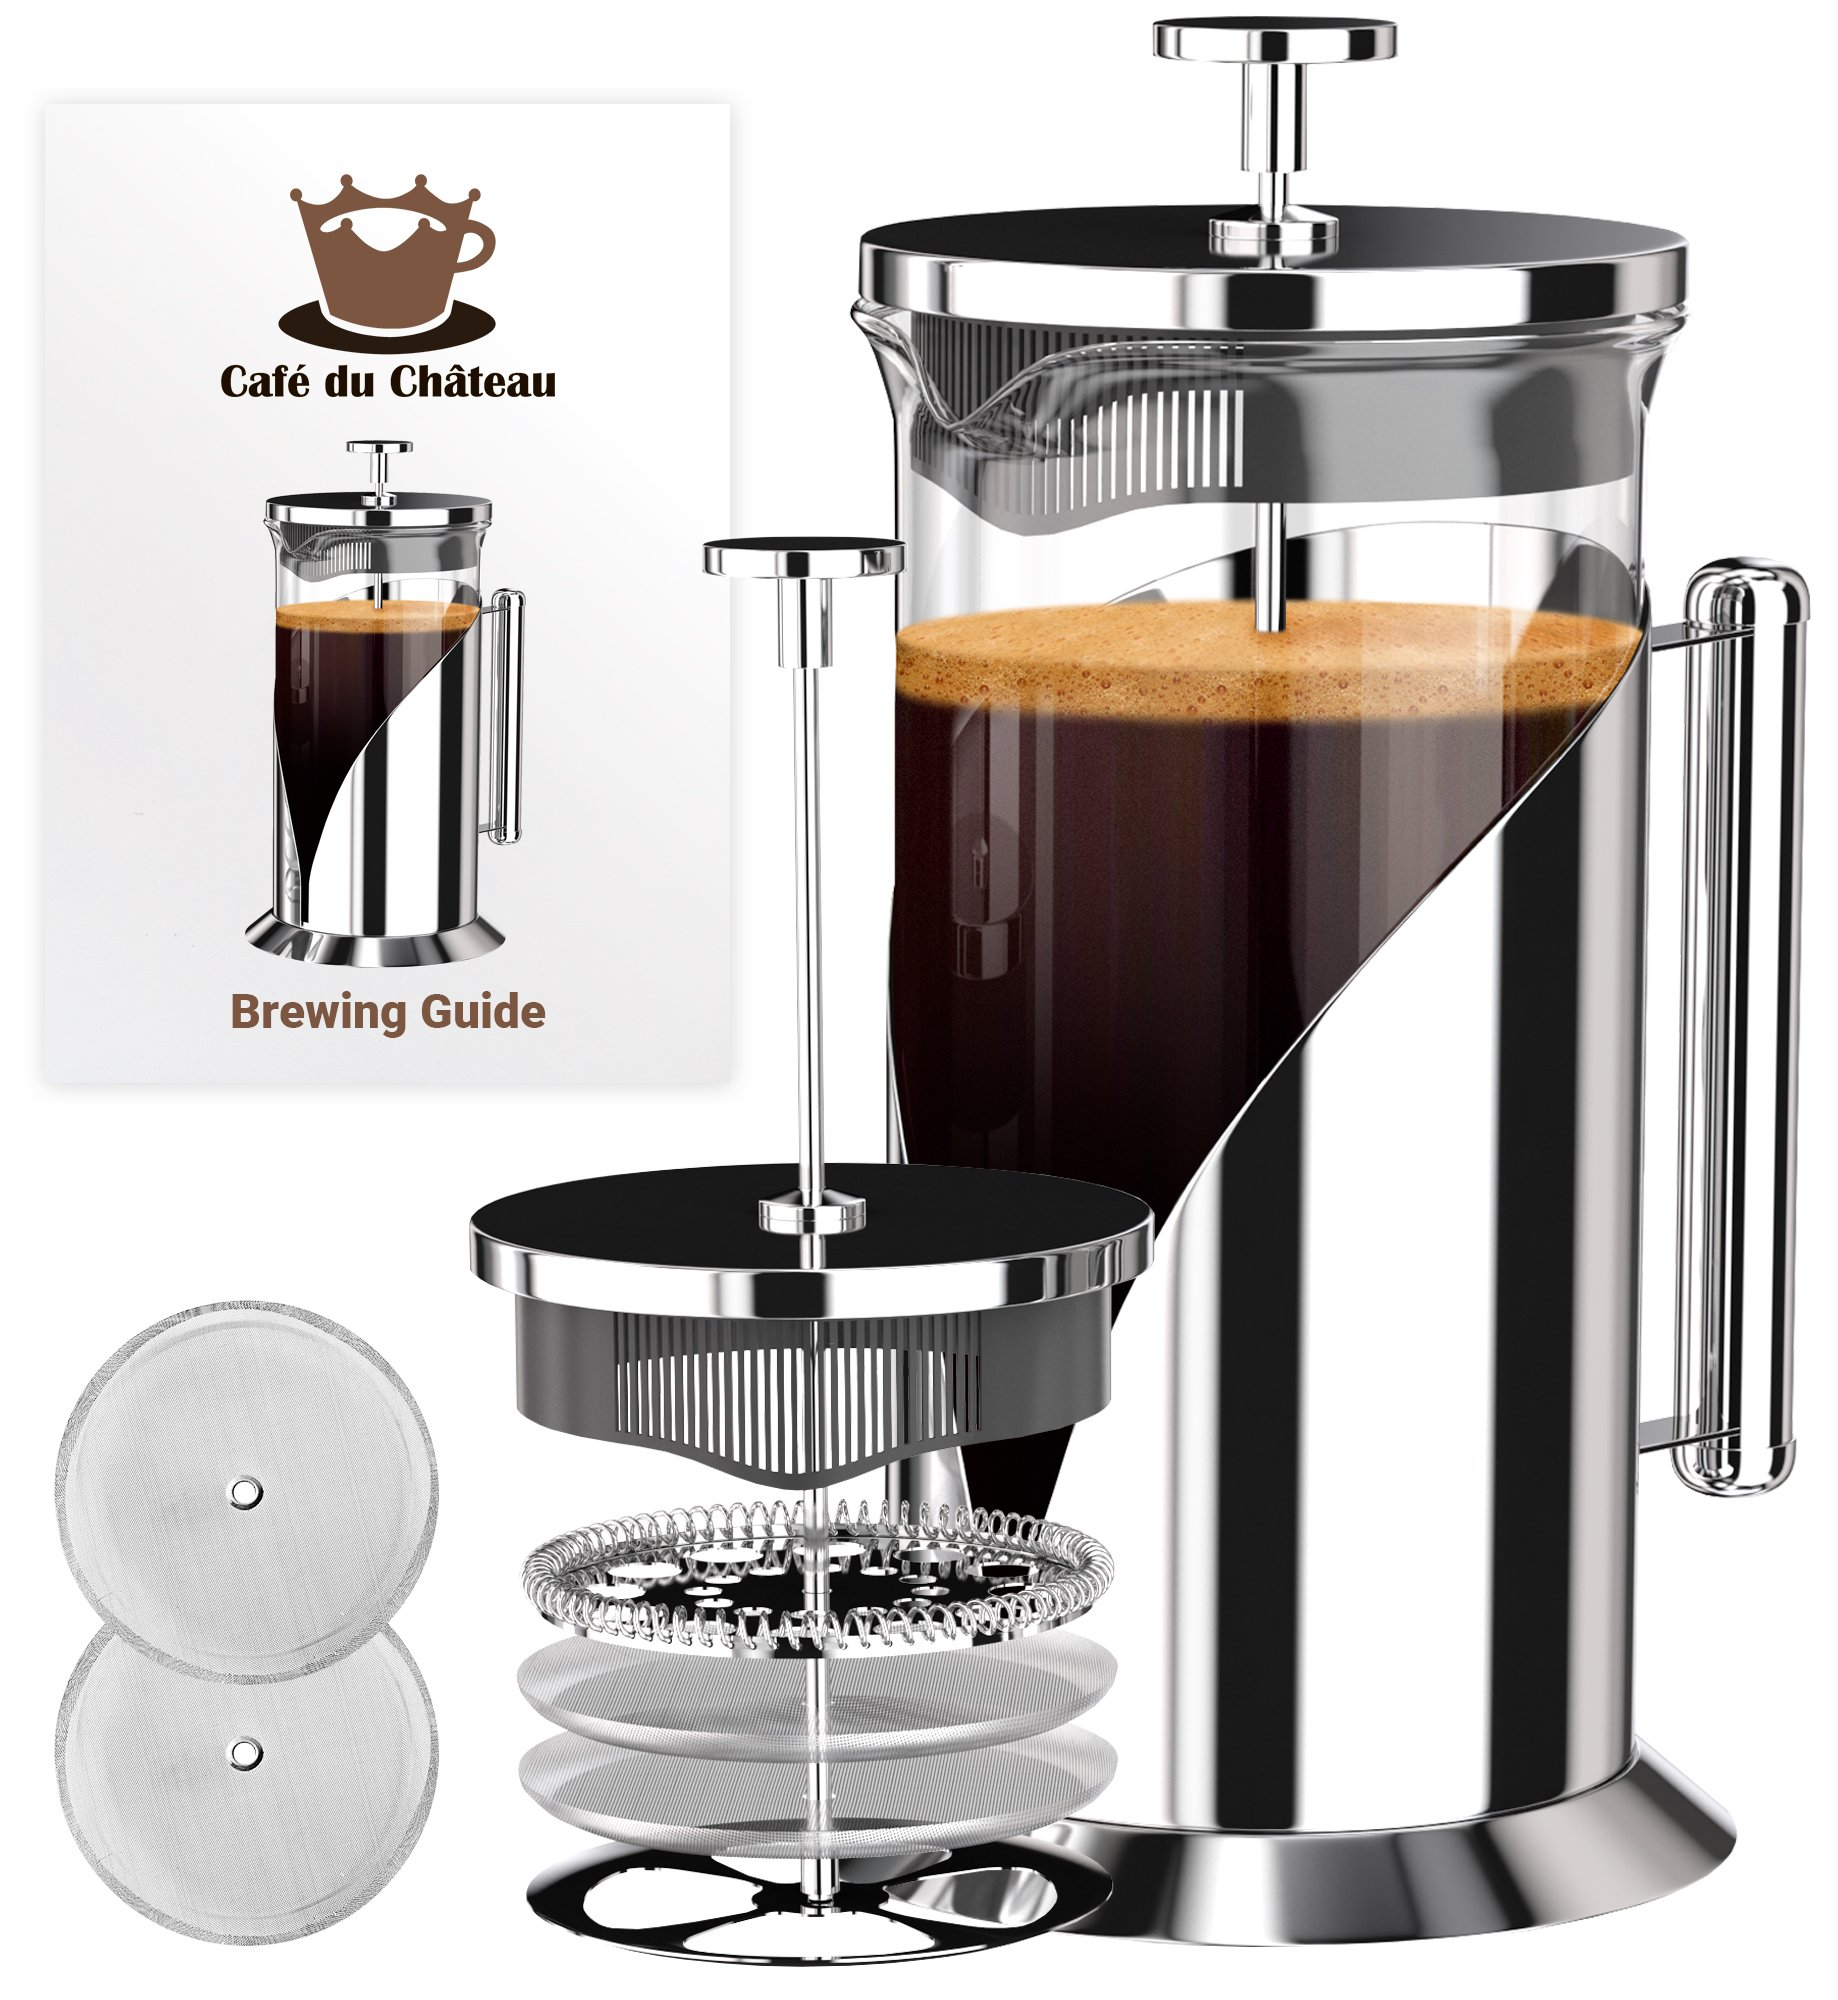 French Press Coffee Maker (8 cup, 34 oz) With 4 Level Filtration System, 304 Grade Stainless Steel, Heat Resistant Borosilicate Glass by Cafe Du Chateau by Cafe Du Chateau (Image #1)